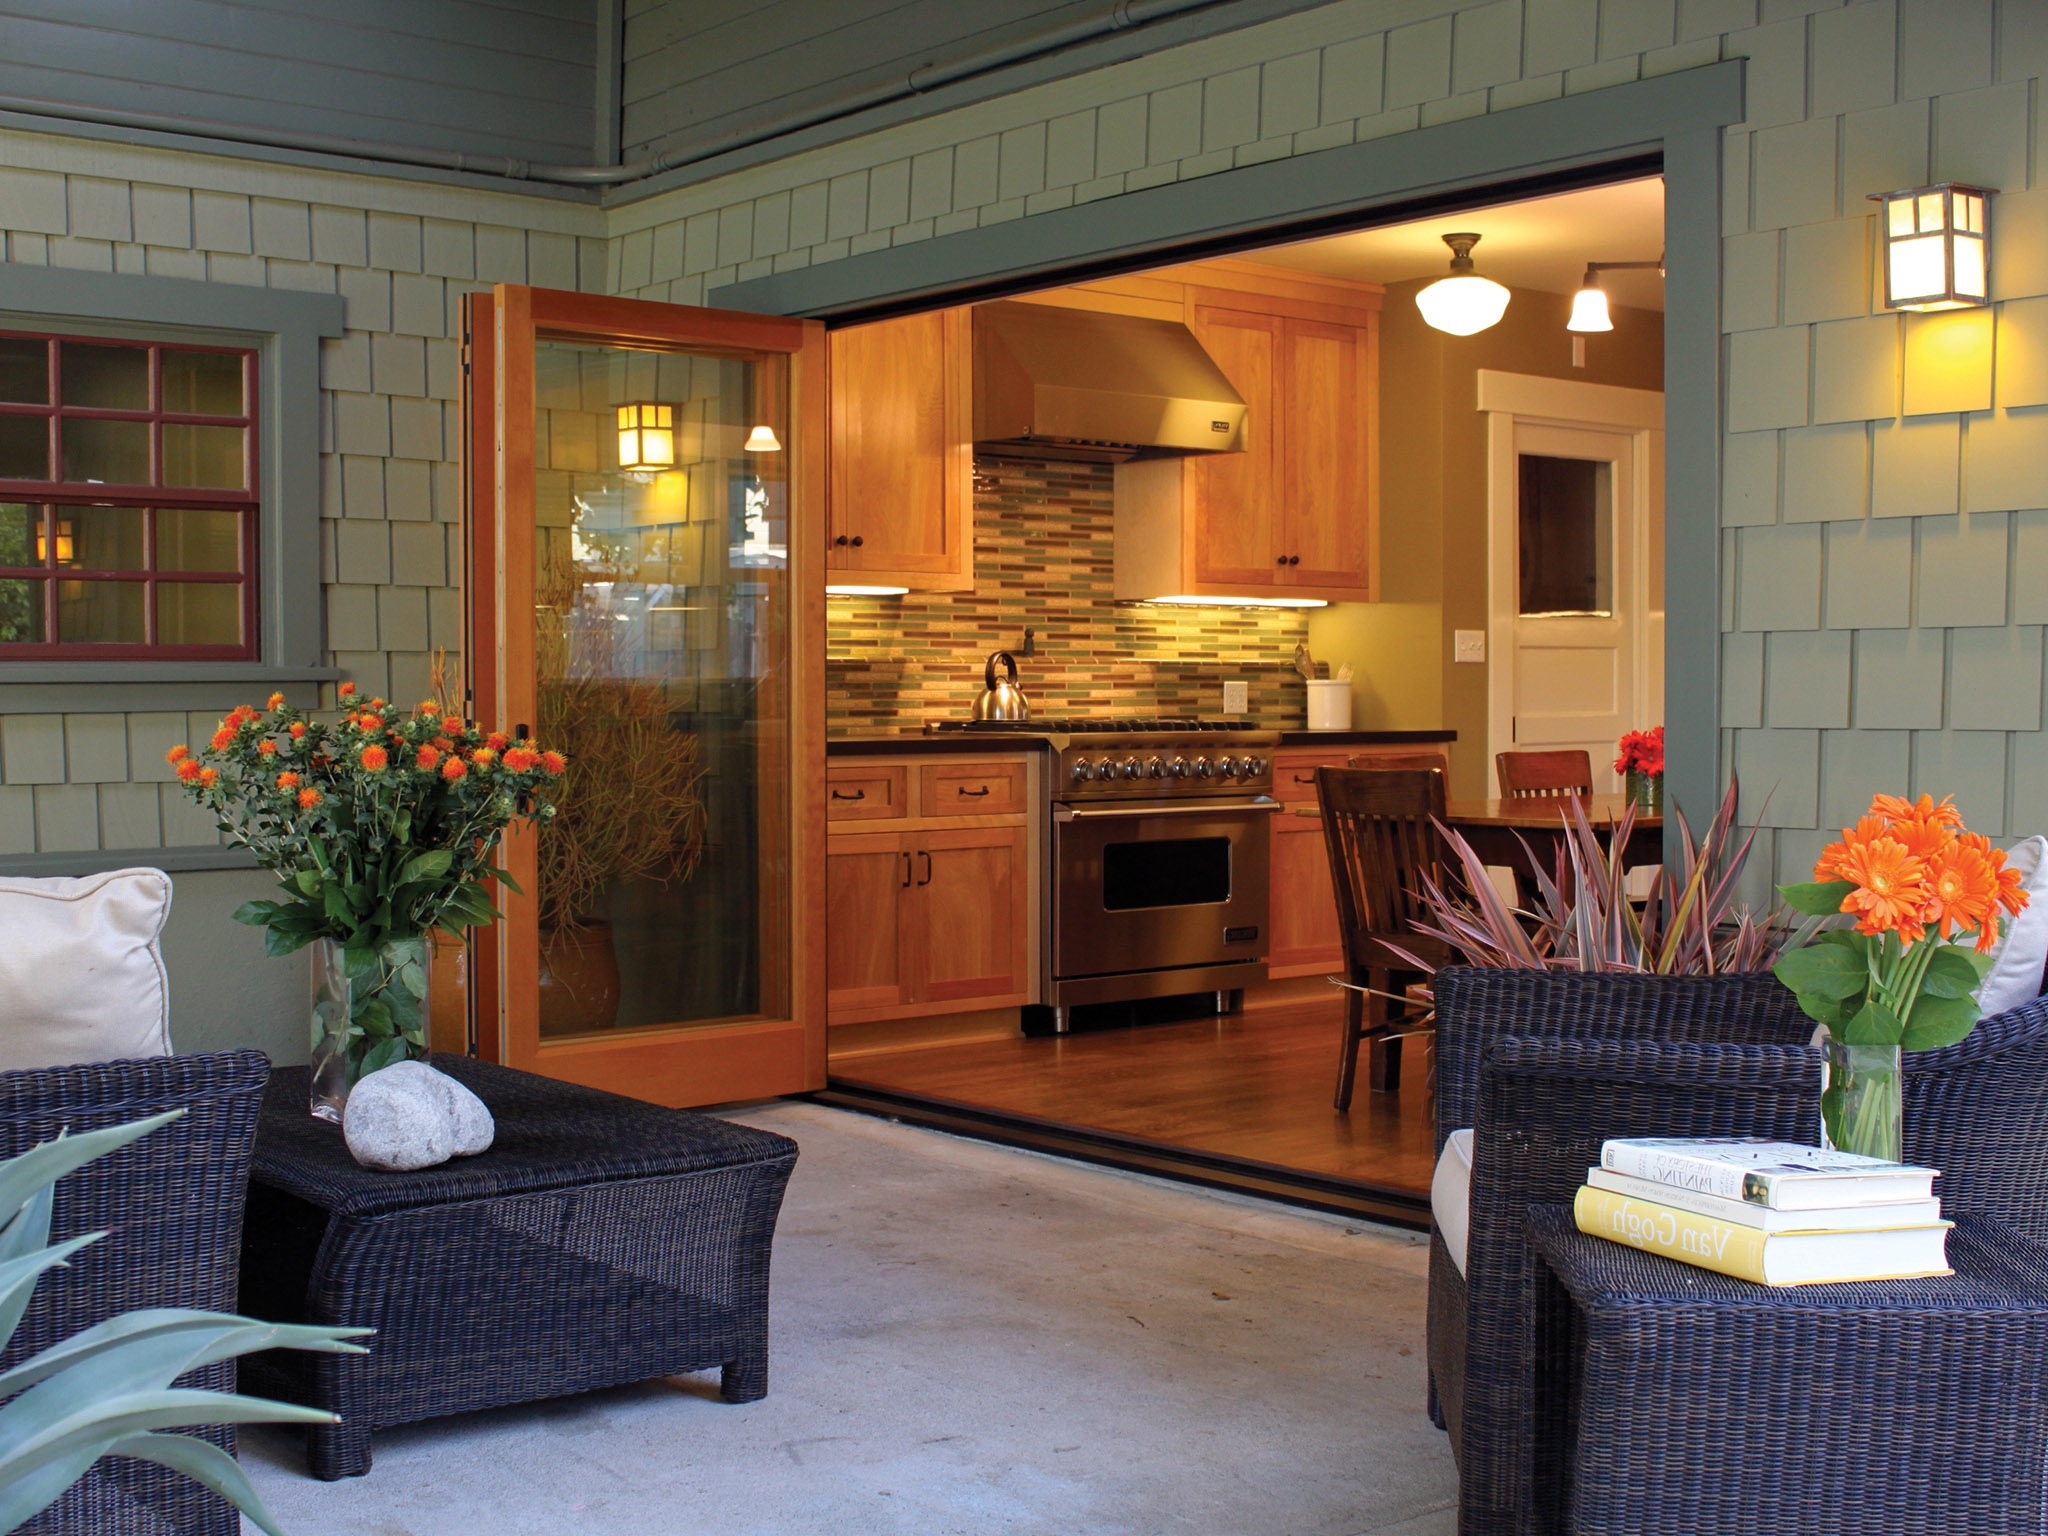 Modern Wooden Frame Bifold Glass Doors For Kitchen And Patio (View 17 of 24)